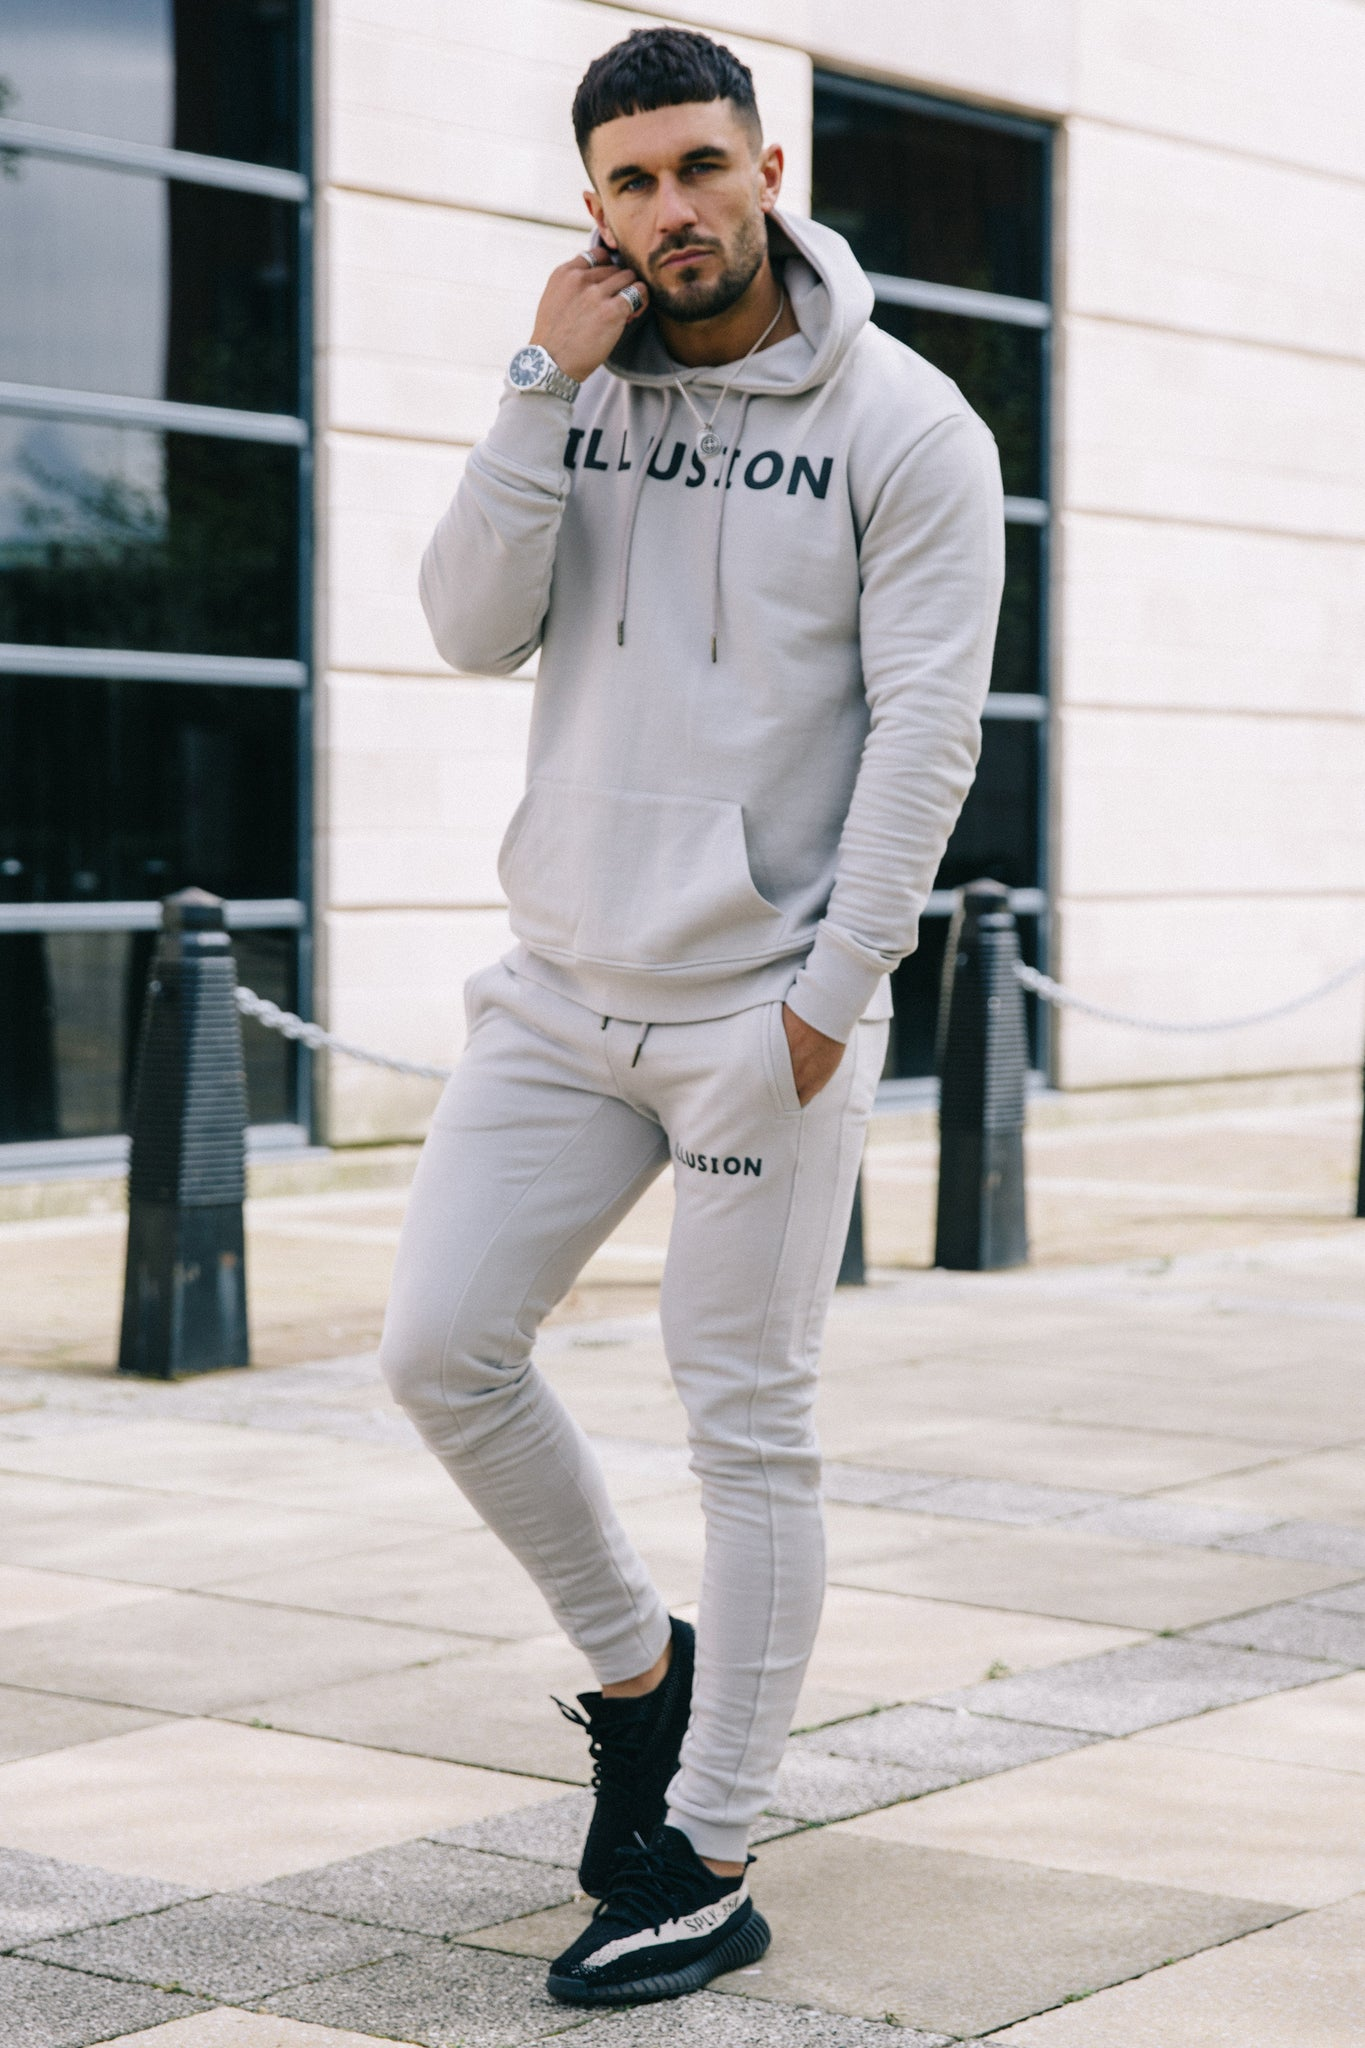 GREY JOGGERS - Illusion Attire